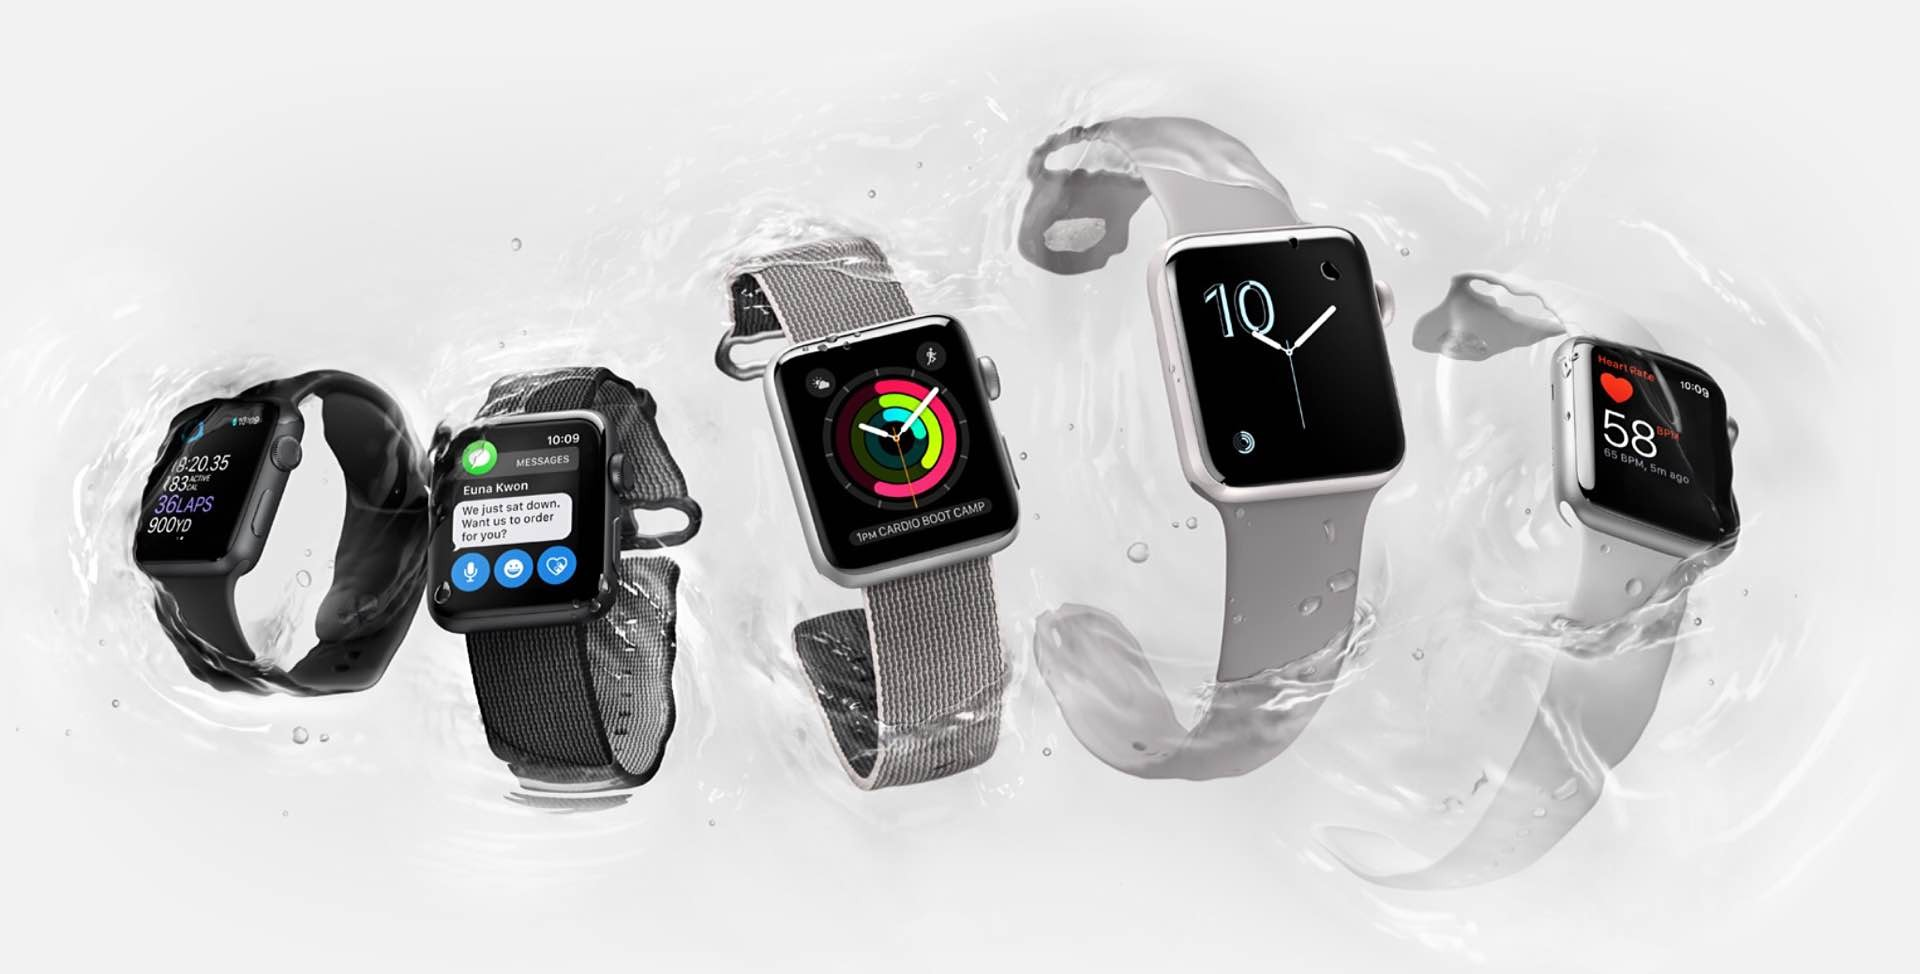 The Apple Watch Series 2. (from $369)